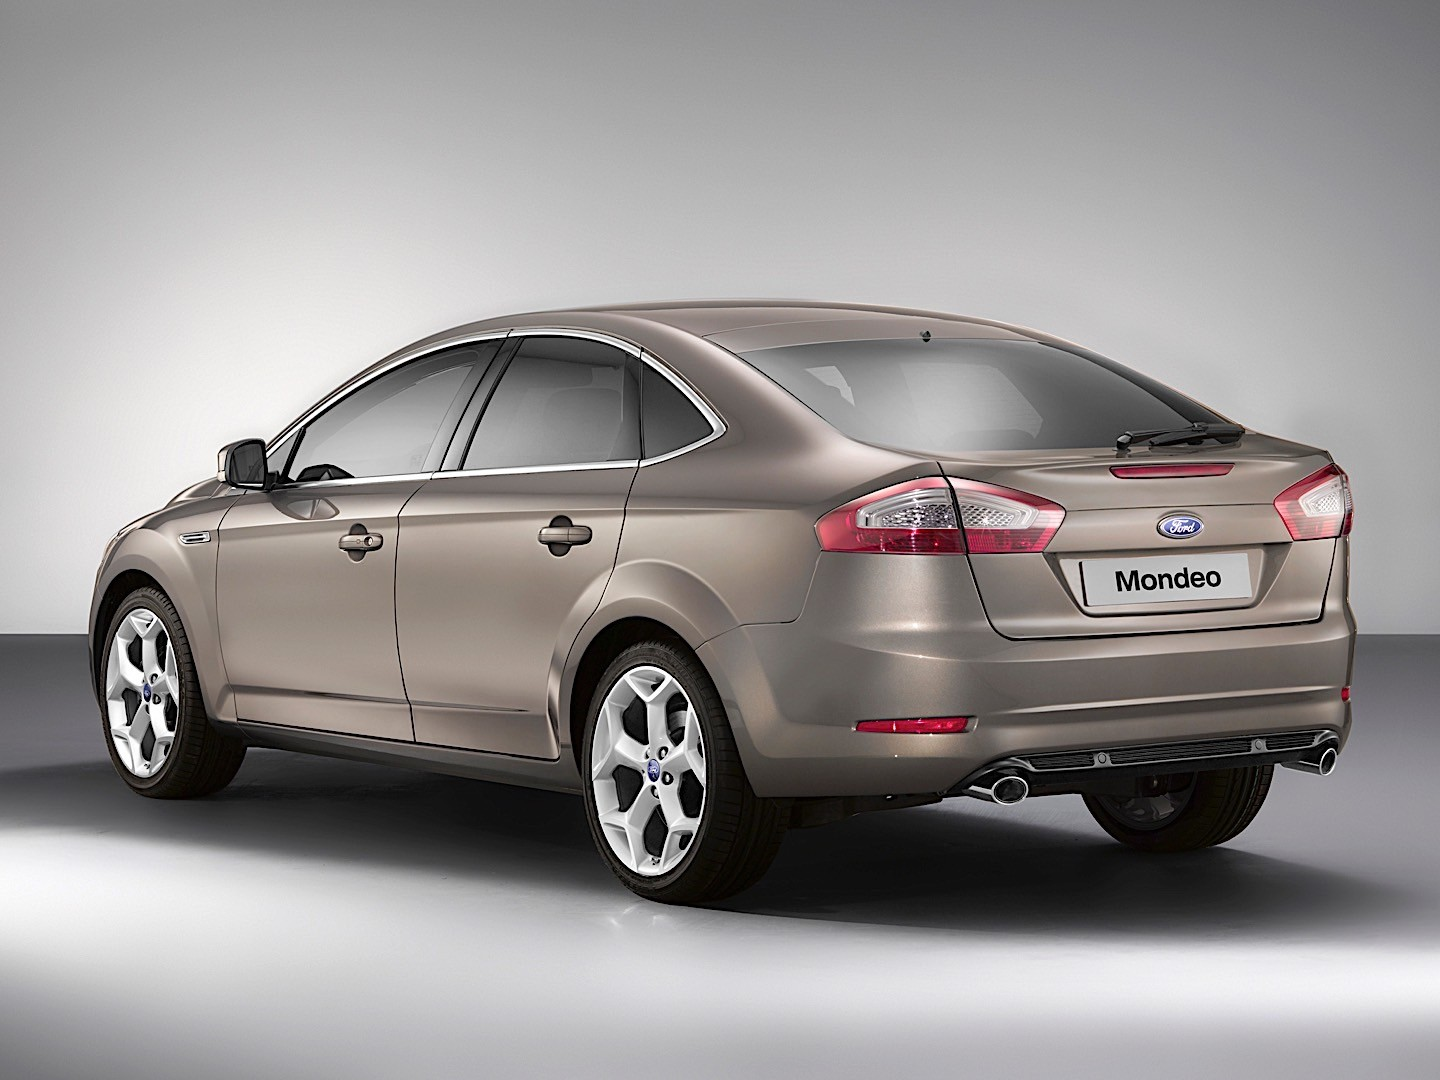 ford mondeo hatchback specs photos 2010 2011 2012. Black Bedroom Furniture Sets. Home Design Ideas